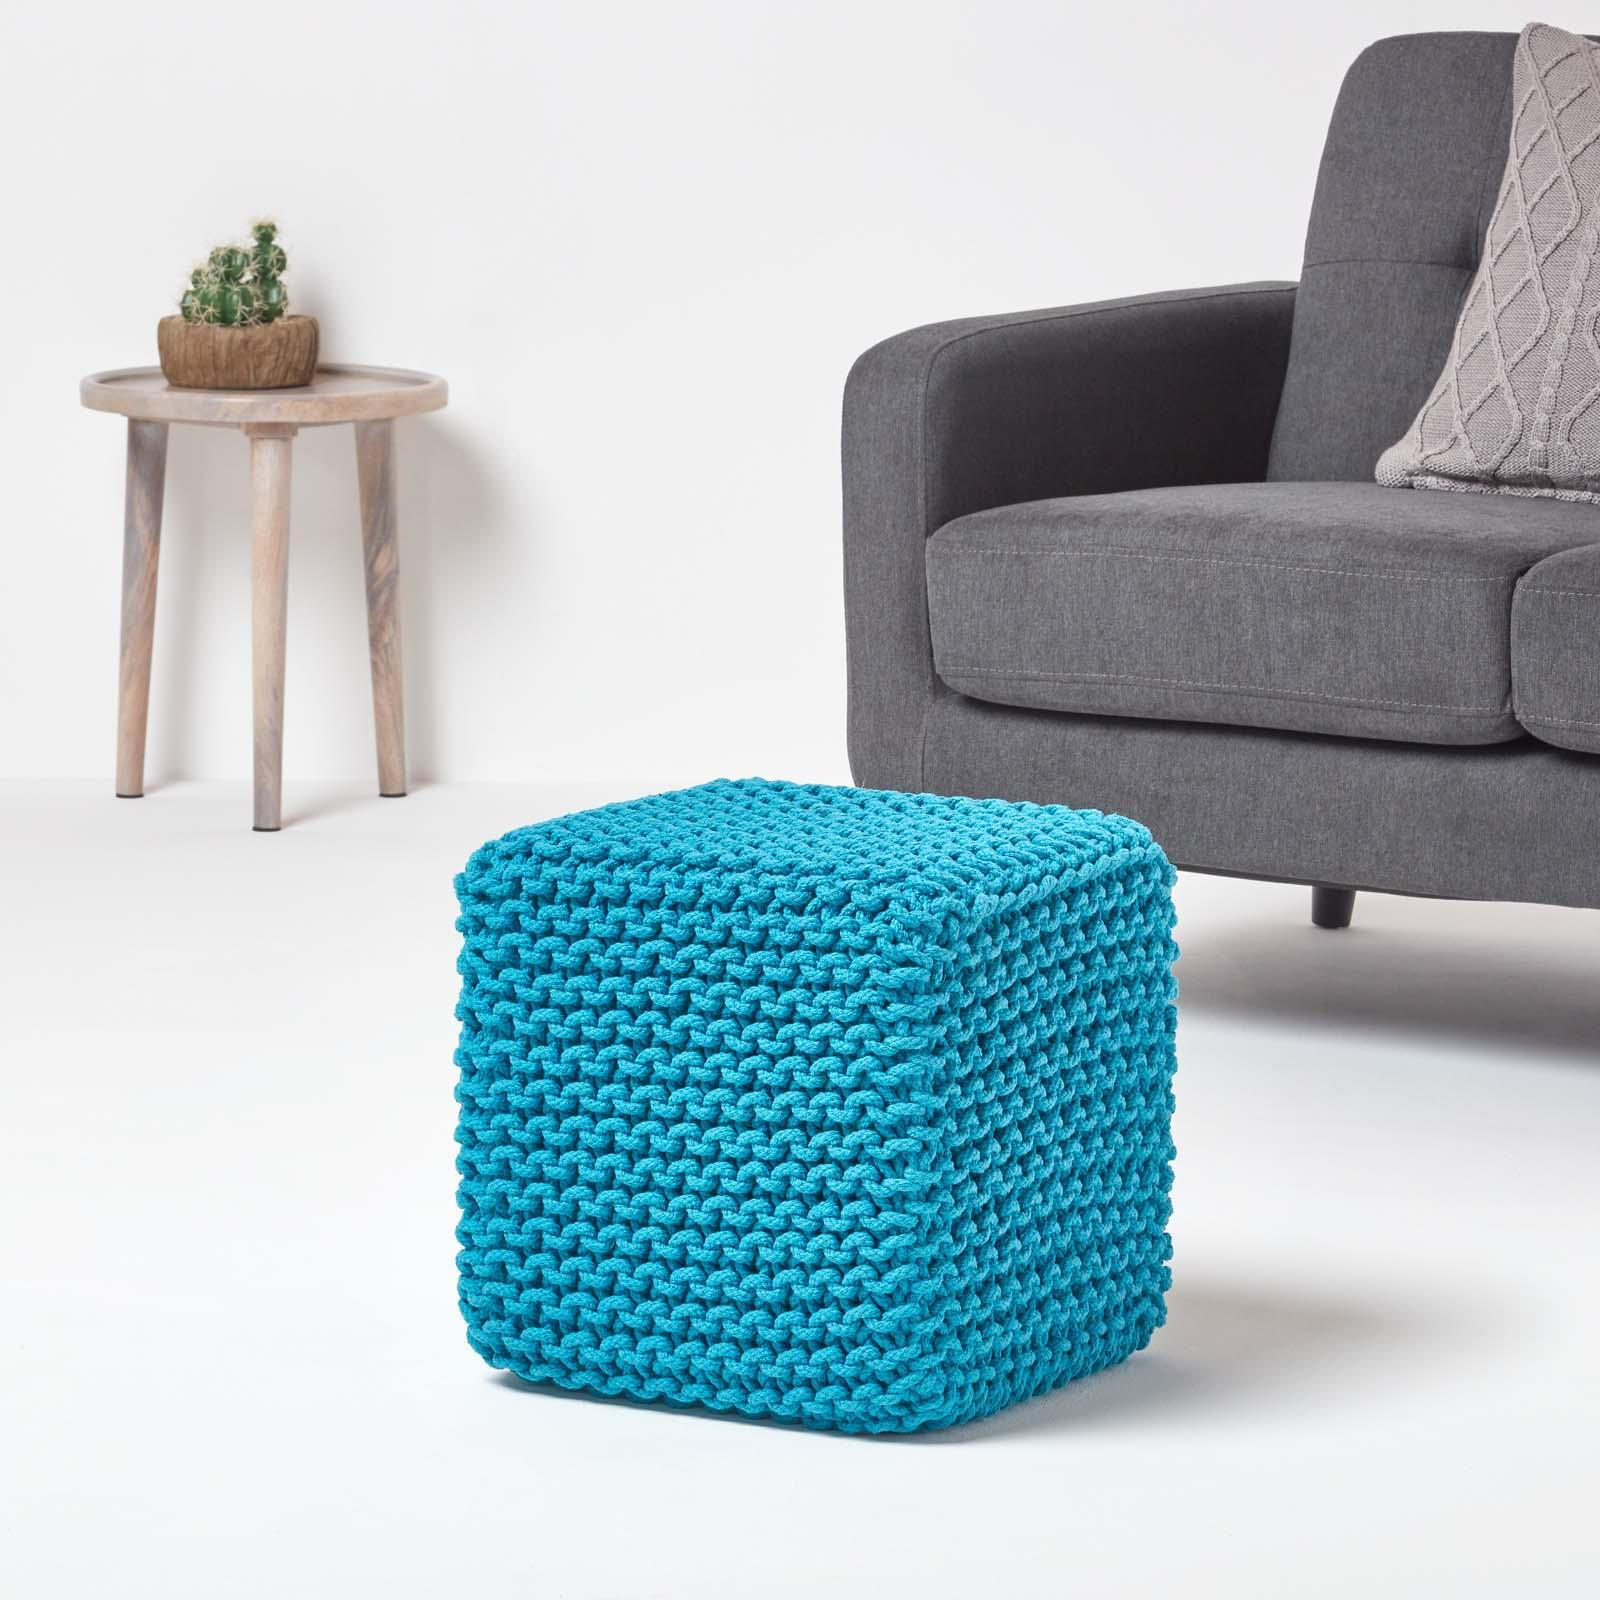 Hand-Knitted-100-Cotton-Pouffes-Round-Sphere-Or-Cube-Square-Chunky-Footstools thumbnail 183